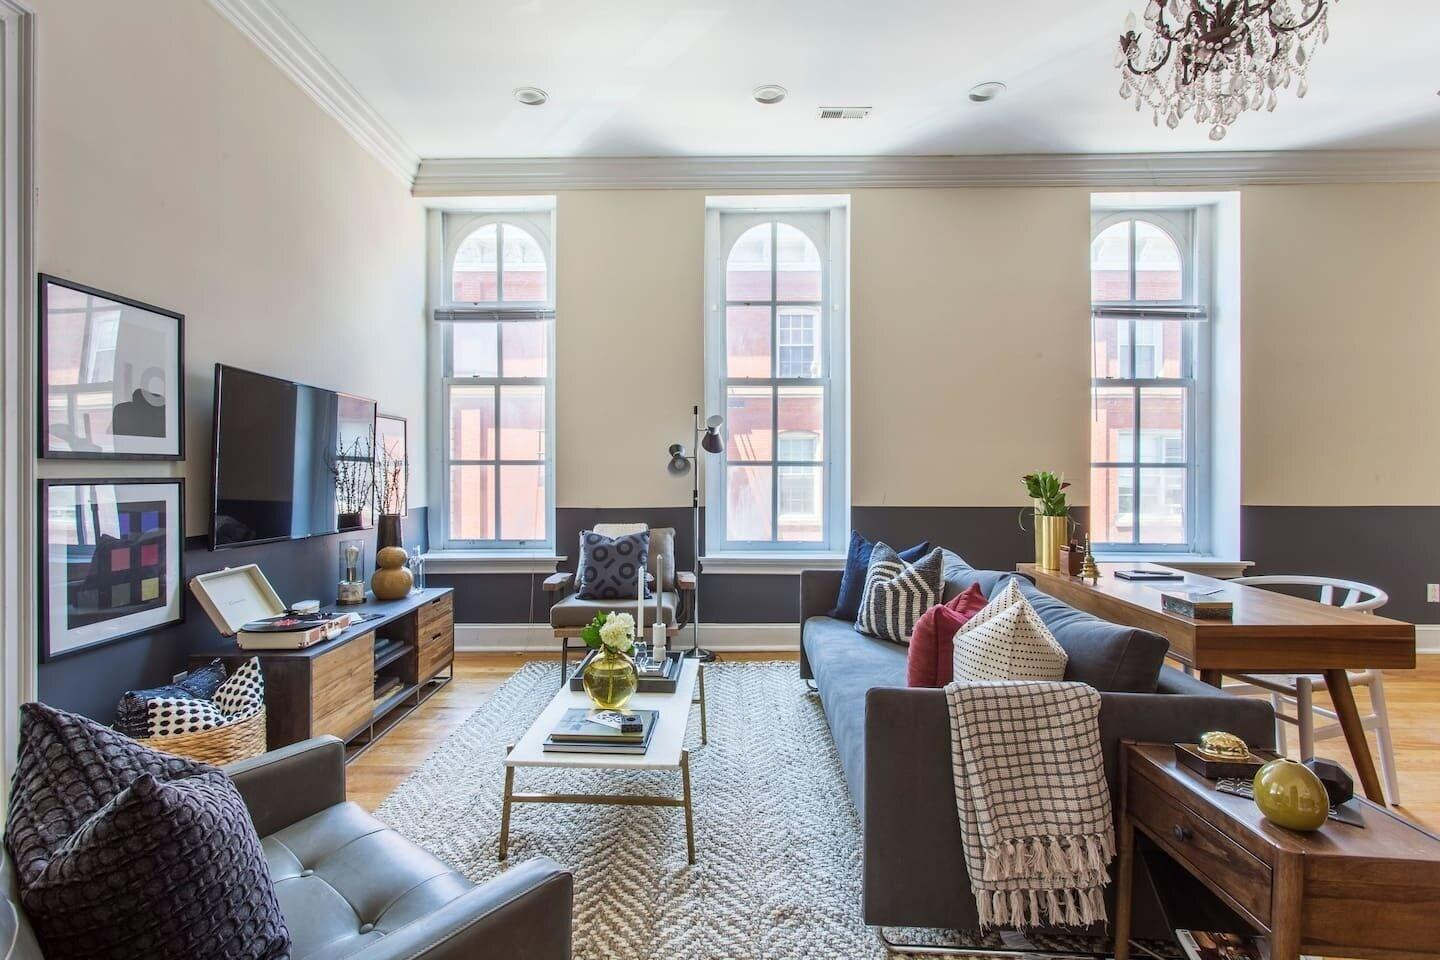 Chic 2br 1ba Apt Near the Liberty Bell by Domio